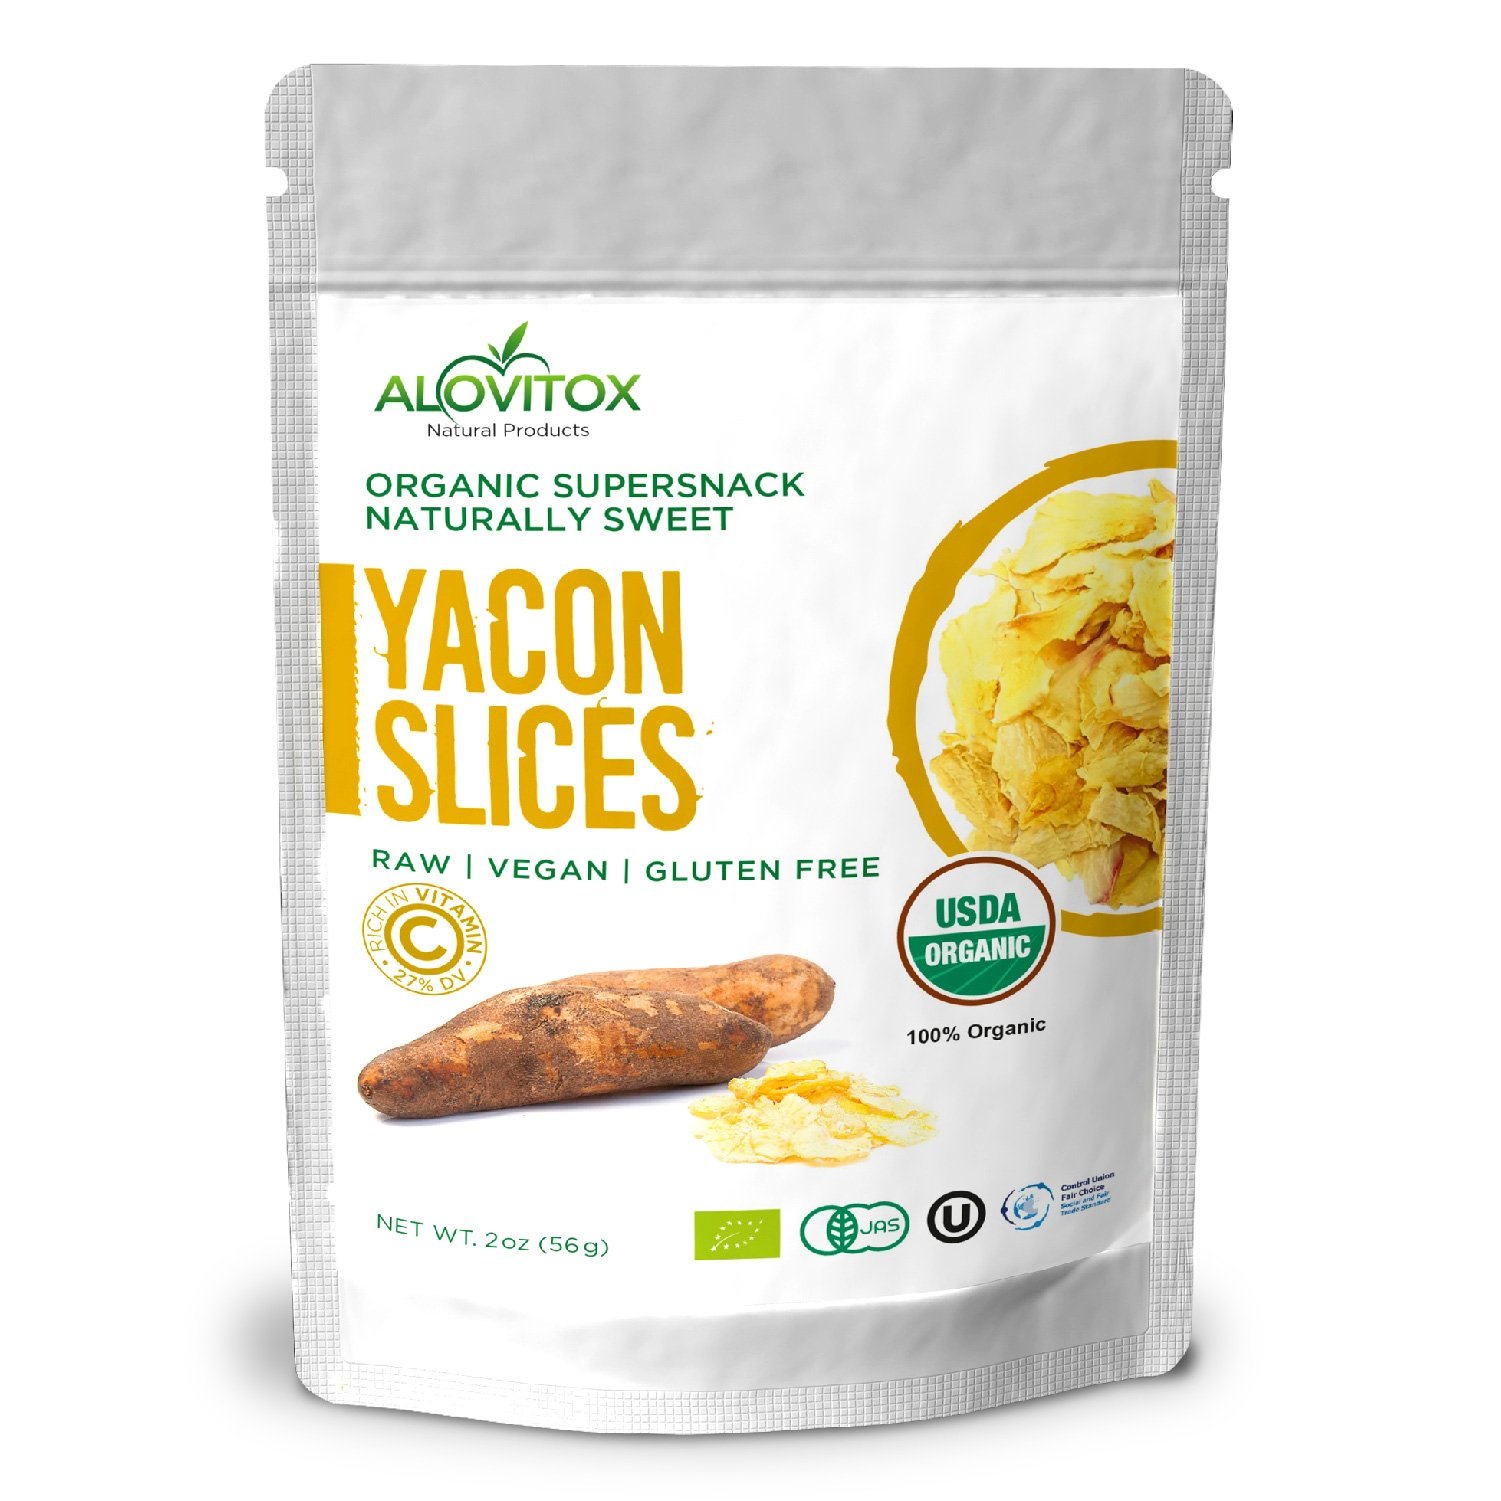 Yacon Slices - Highest Quality Wellness and Weight Loss Prebiotic Raw Keto Paleo Vegan and Gluten Free - FOS Root Diet Friendly Pure - USDA Organic 2oz by Alovitox